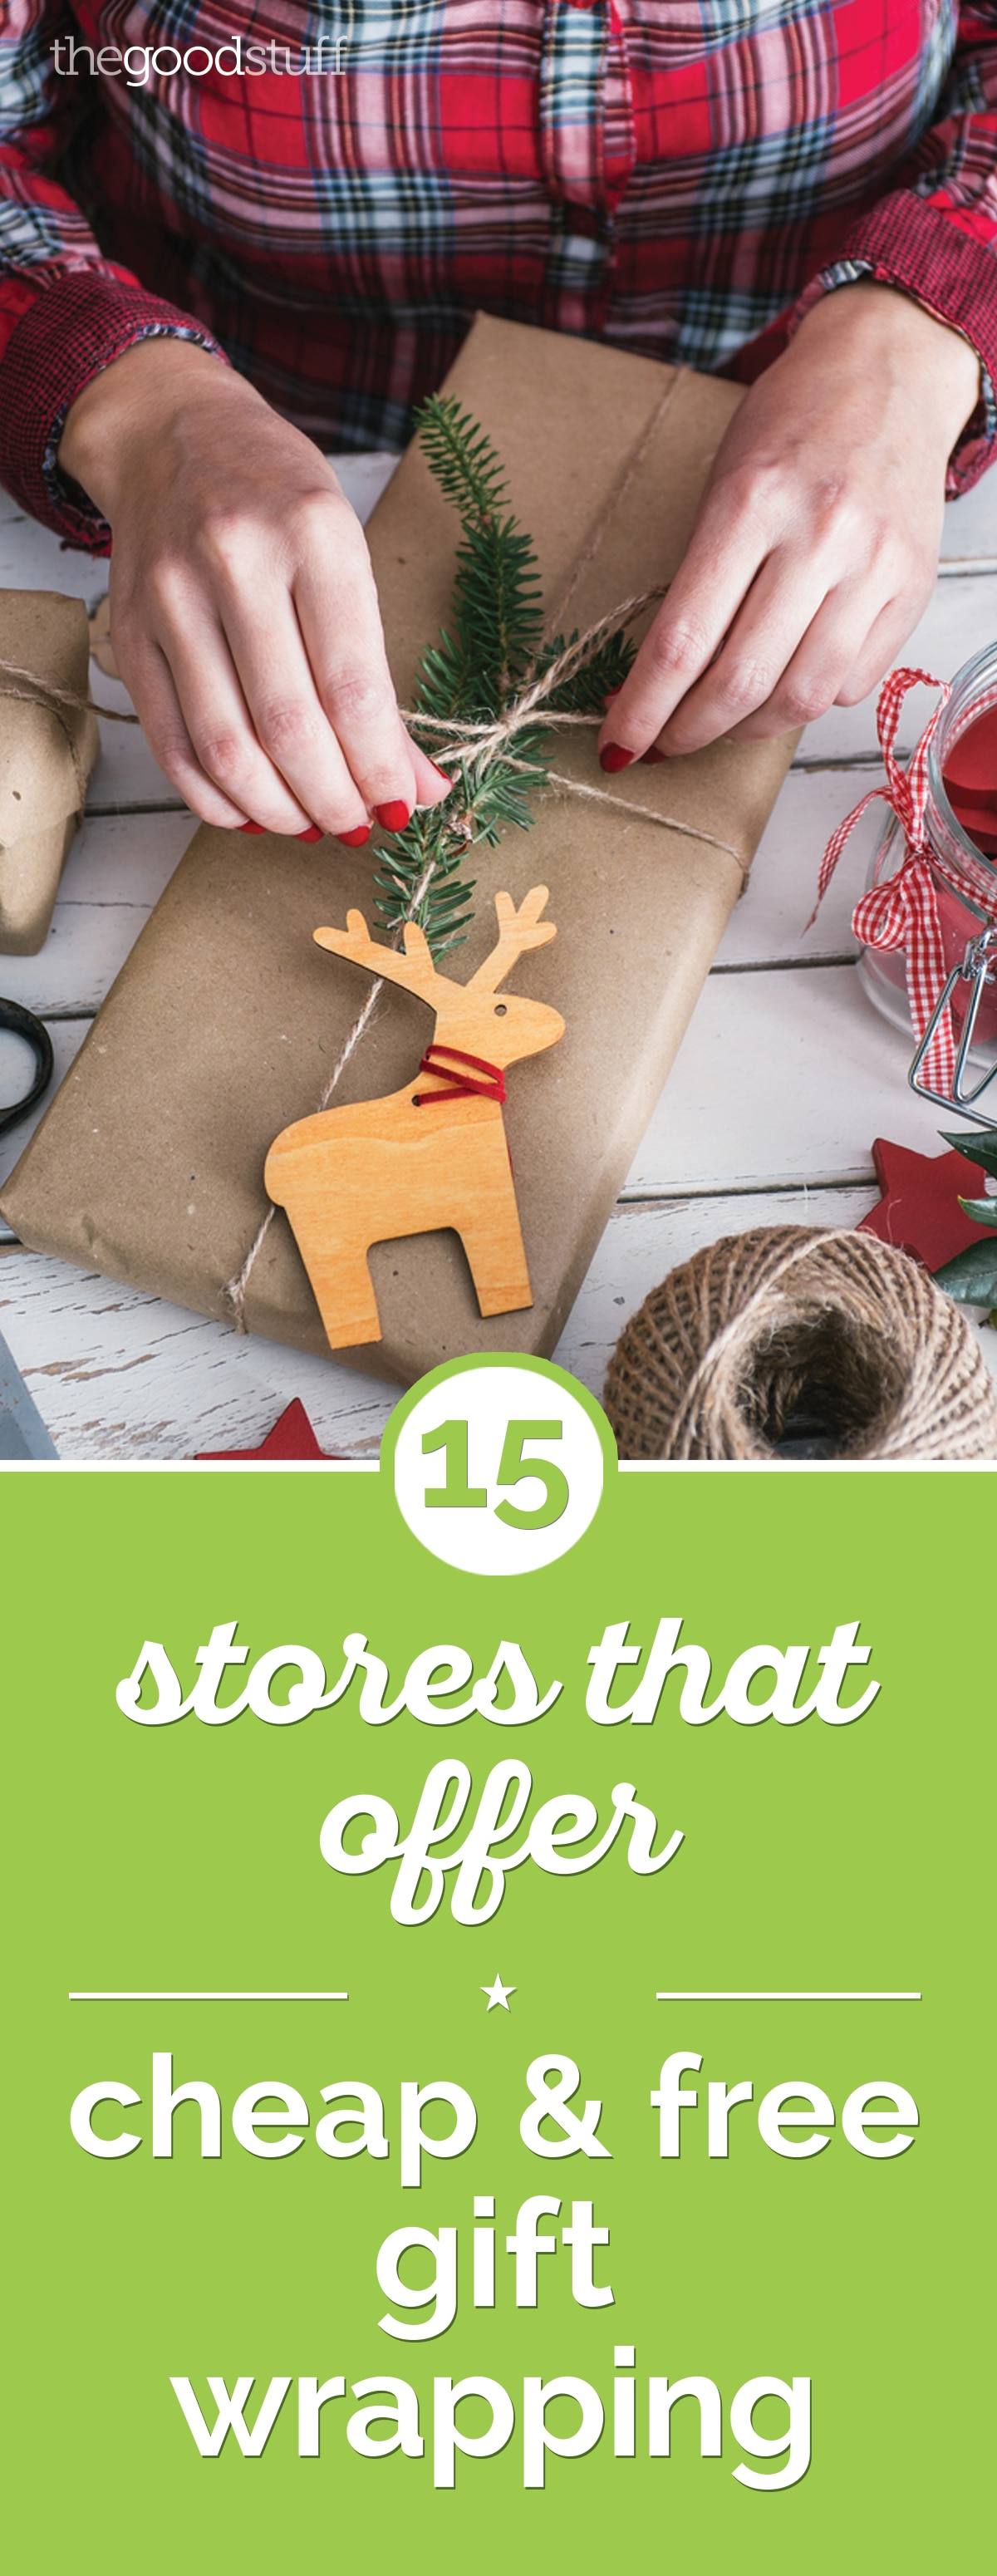 15 Stores That Offer Cheap & Free Gift Wrapping | thegoodstuff